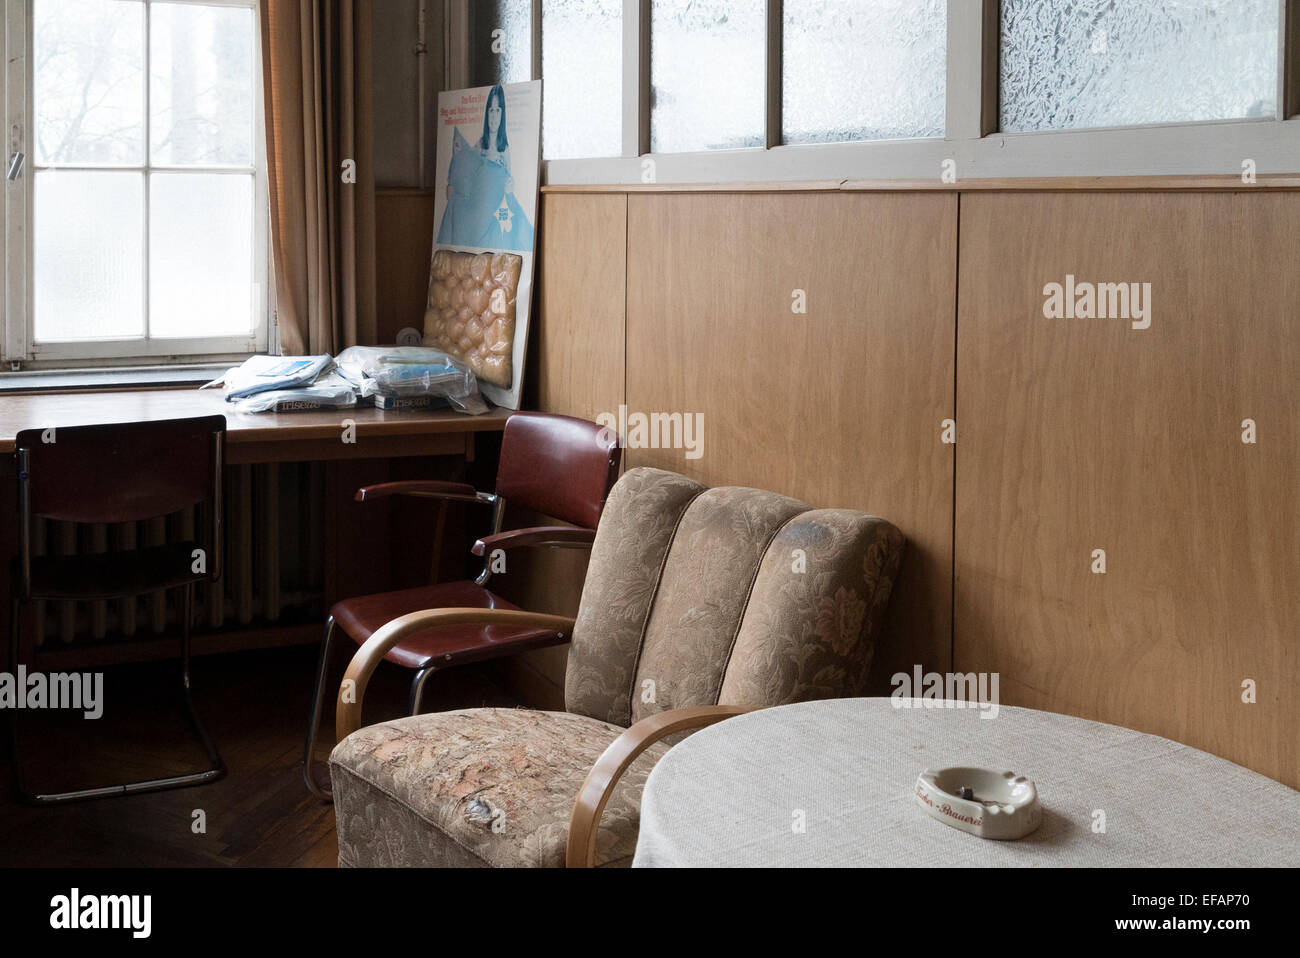 laundry factory museum in Bielefeld: 1950s visitor room , photo: January 25, 2015. - Stock Image